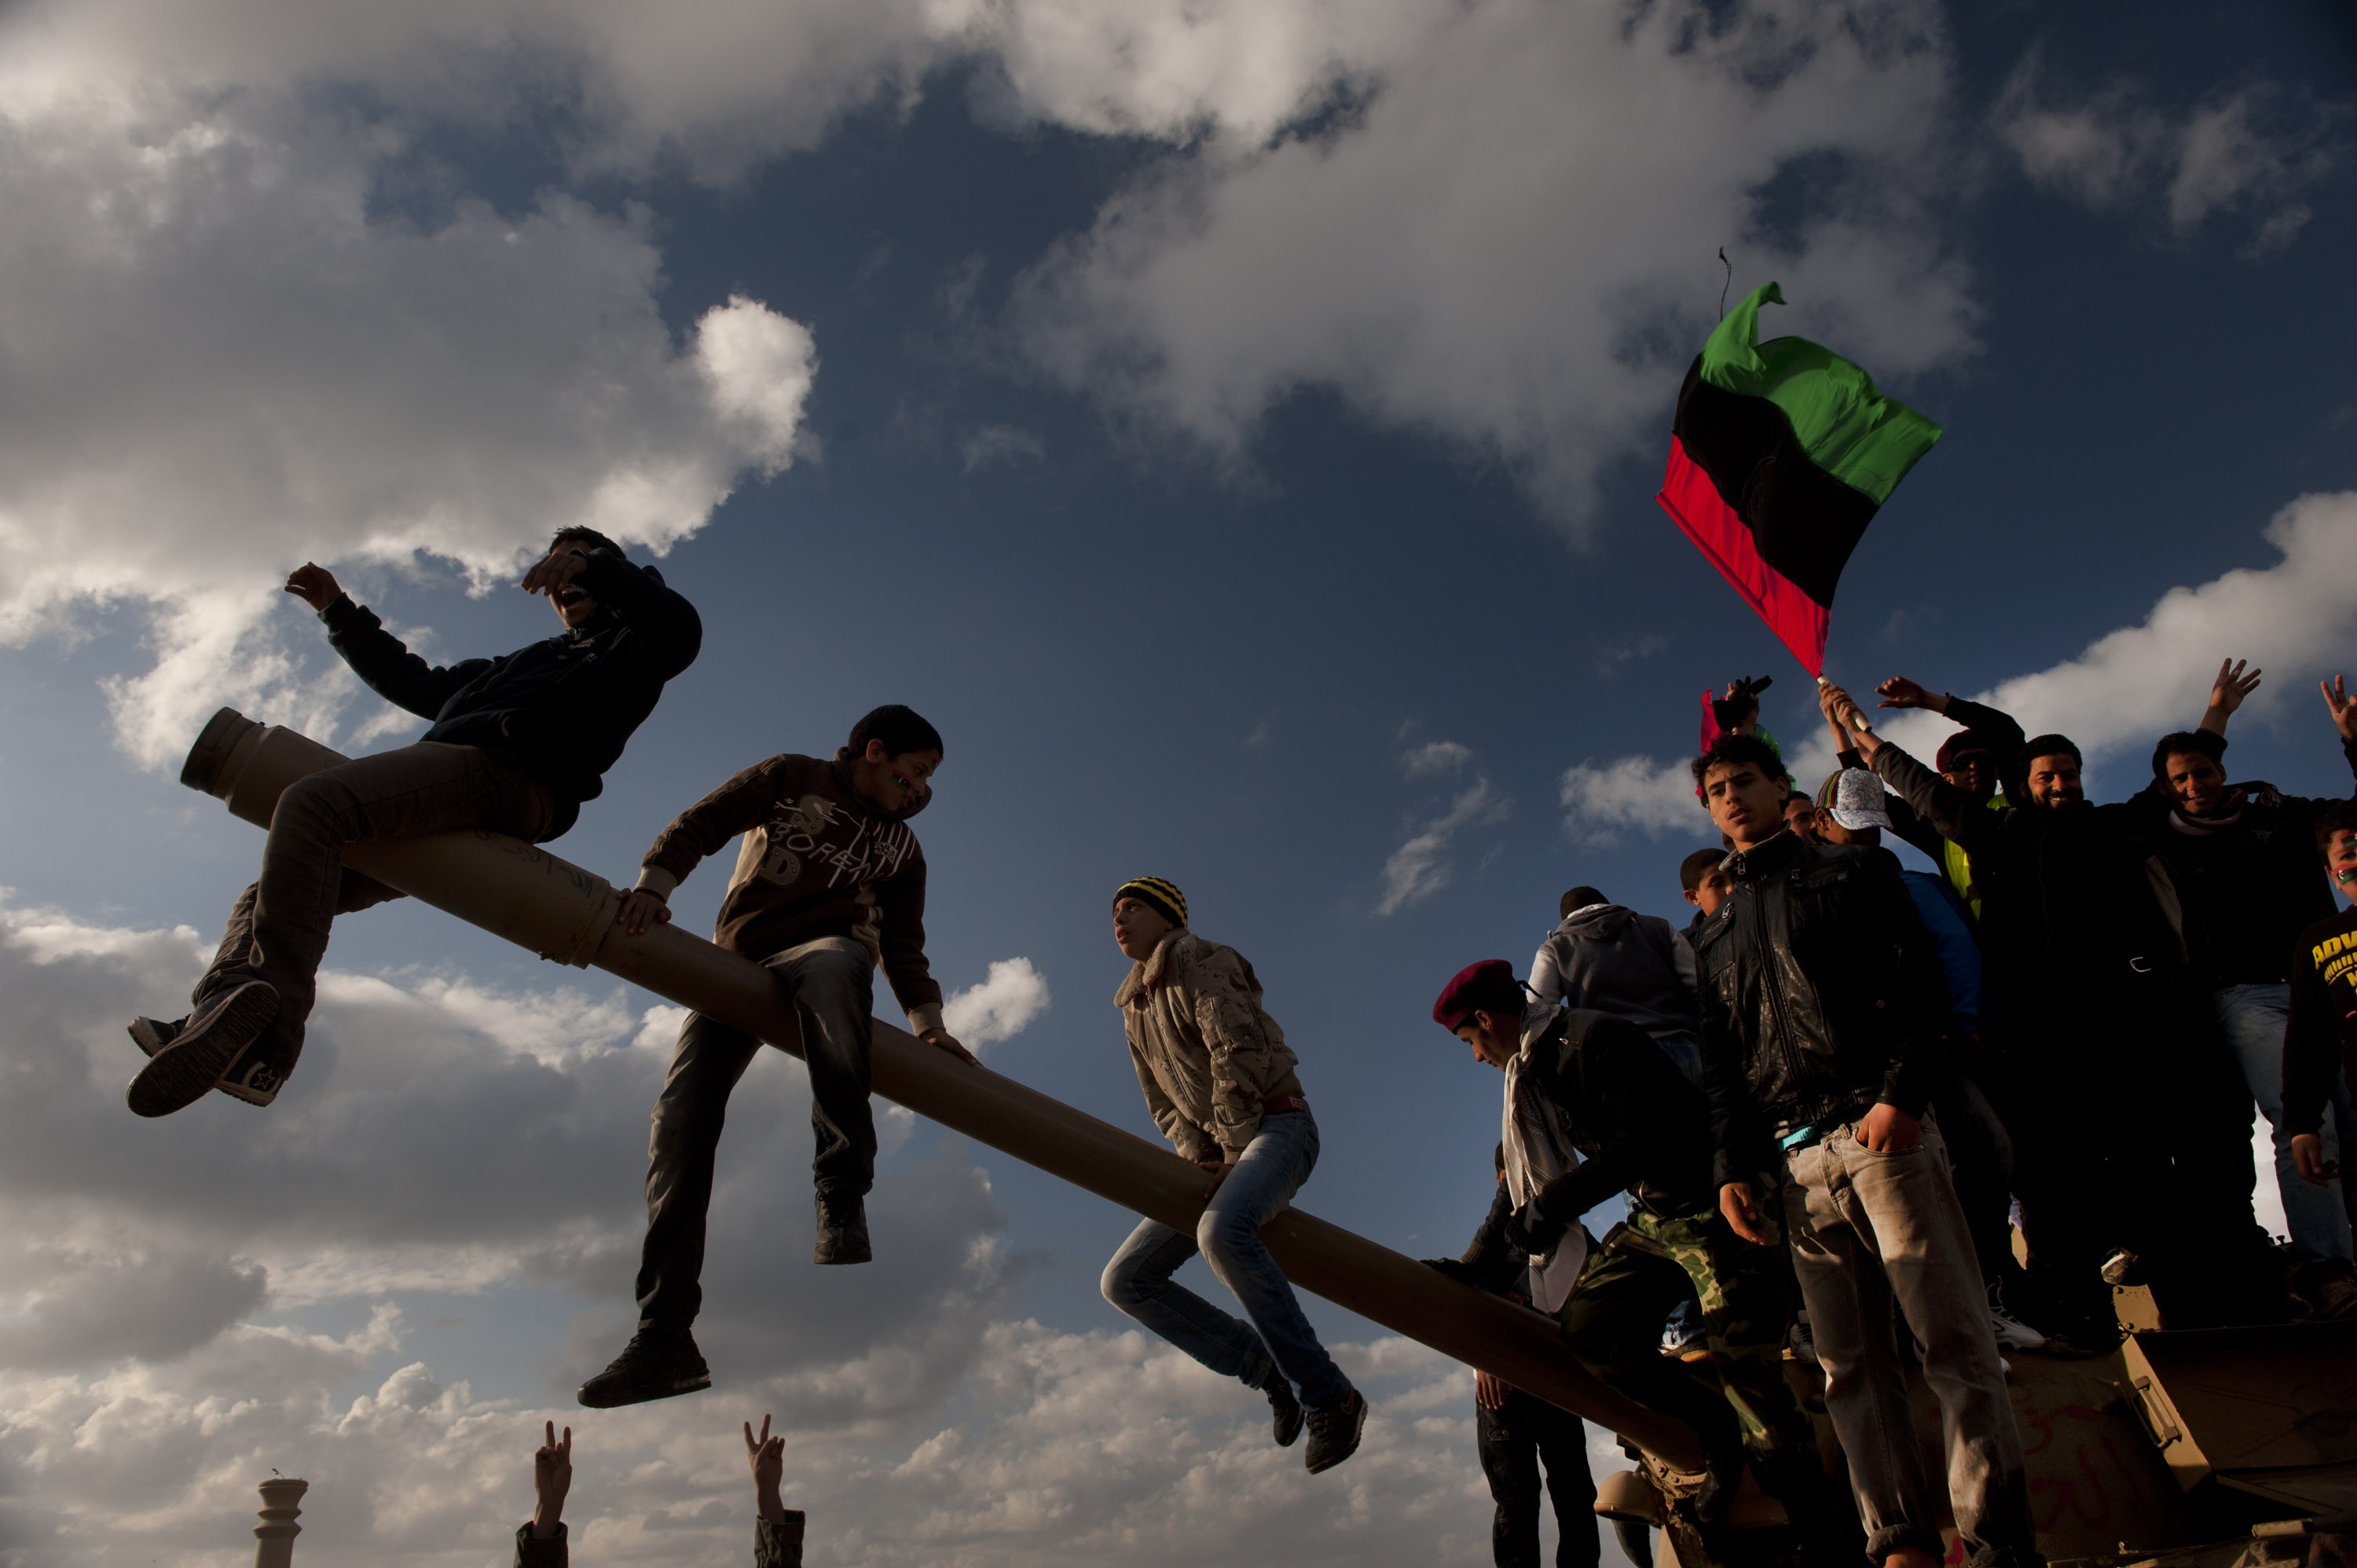 Libyans demonstrate against Colonel Muammar el-Qaddafi, in Benghazi, Libya, February 26, 2011. Dangerous confrontations have been going on between opposition forces and those loyal to Col. Qaddafi across Libya.